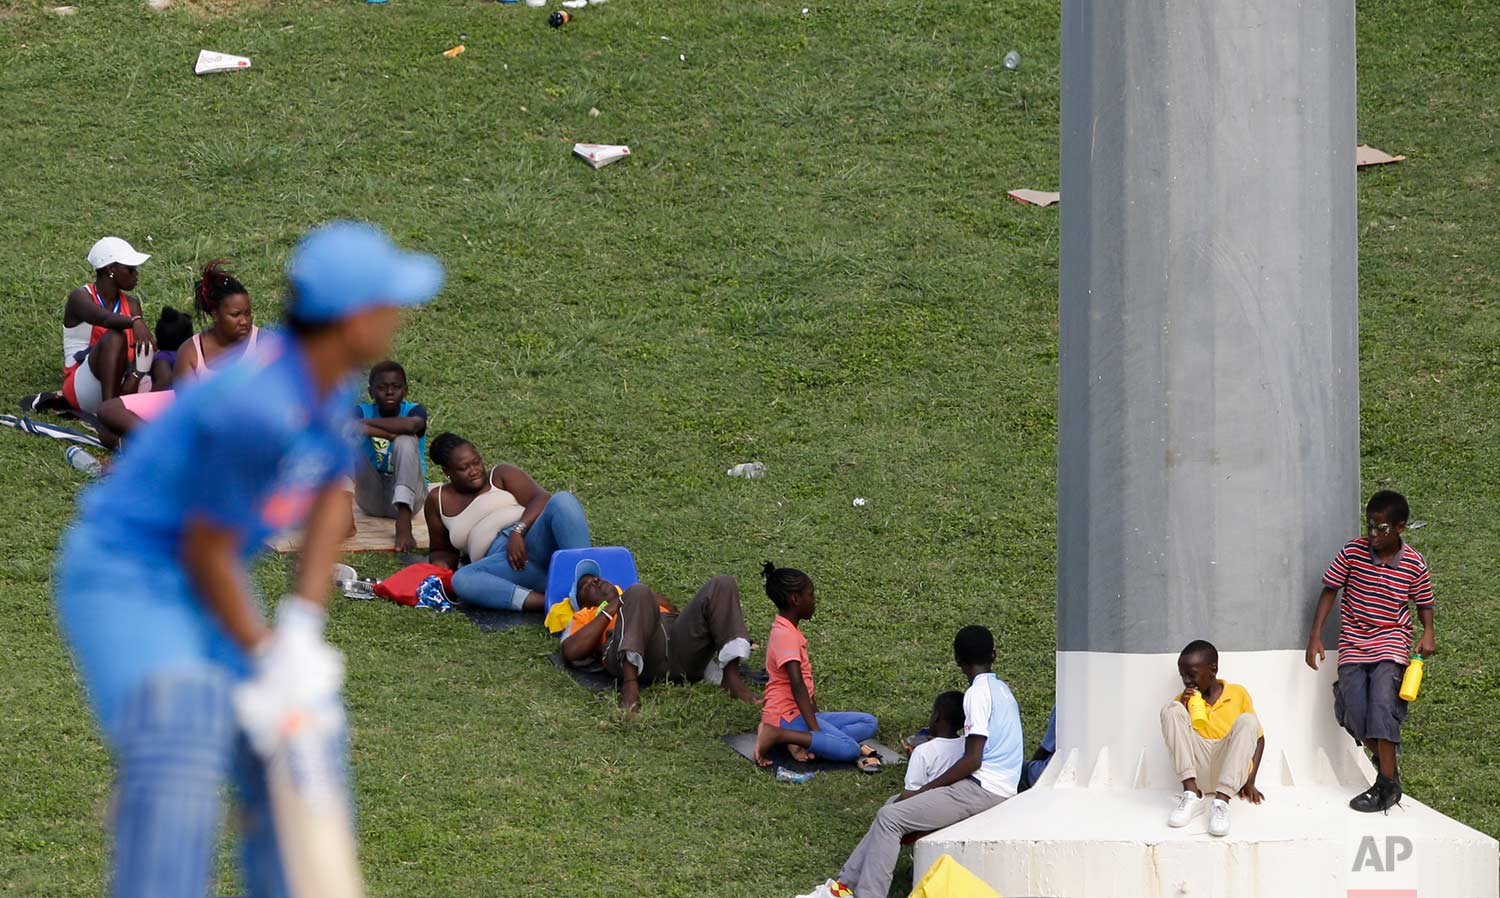 In this July 2, 2017 photo, spectators watch the fourth ODI cricket match between India and West Indies as India's MS Dhoni waits for a delivery at the Sir Vivian Richards Stadium in North Sound, Antigua and Barbuda. (AP Photo/Ricardo Mazalan)